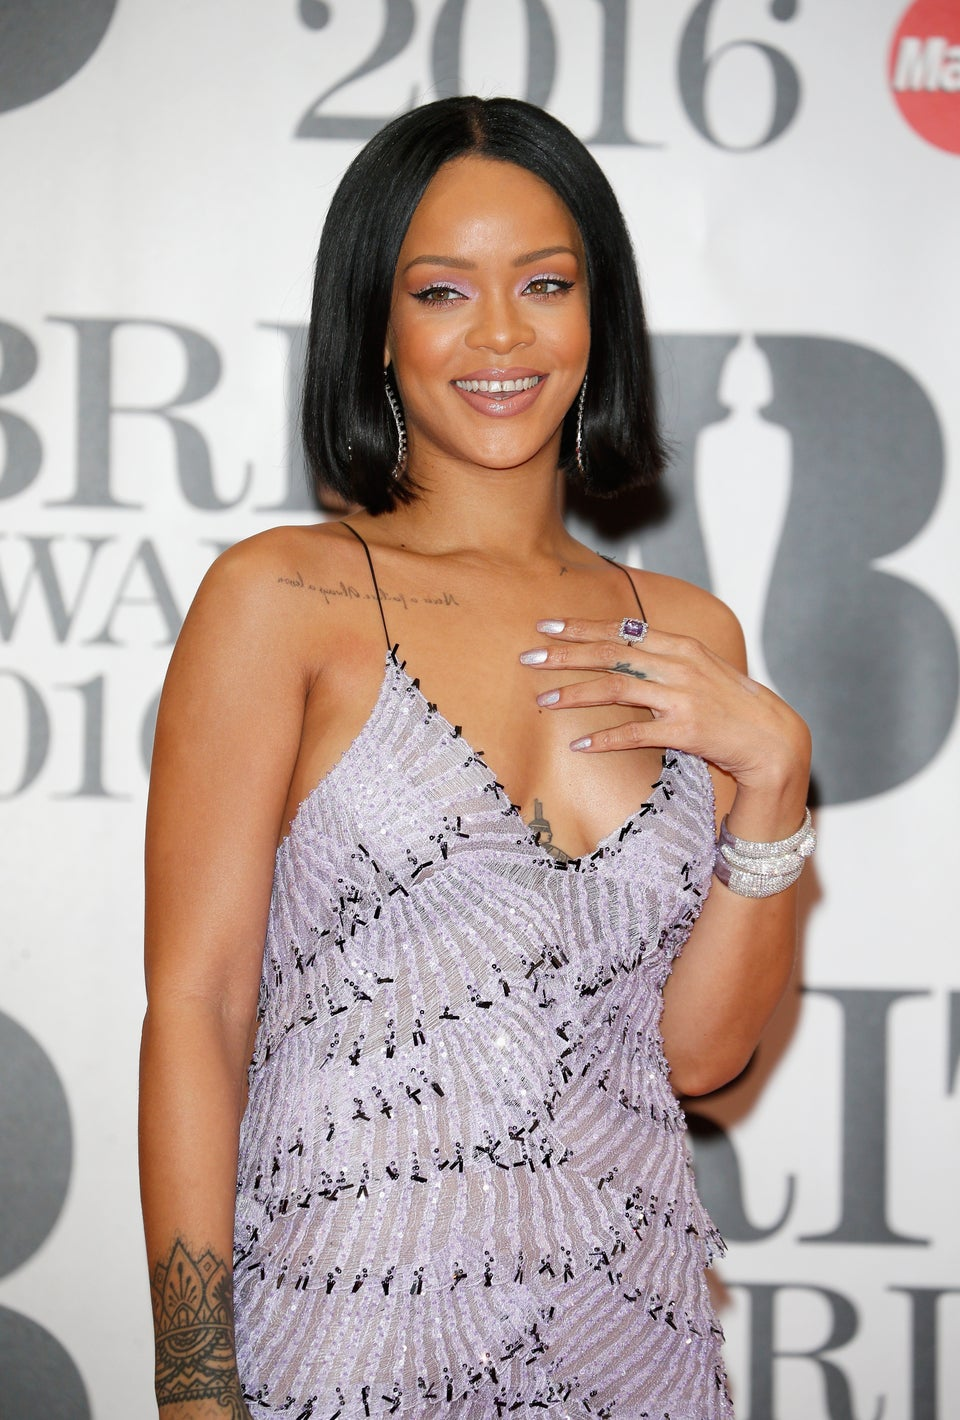 Rihanna Joins Forces with Manolo Blahnik and It's Epic